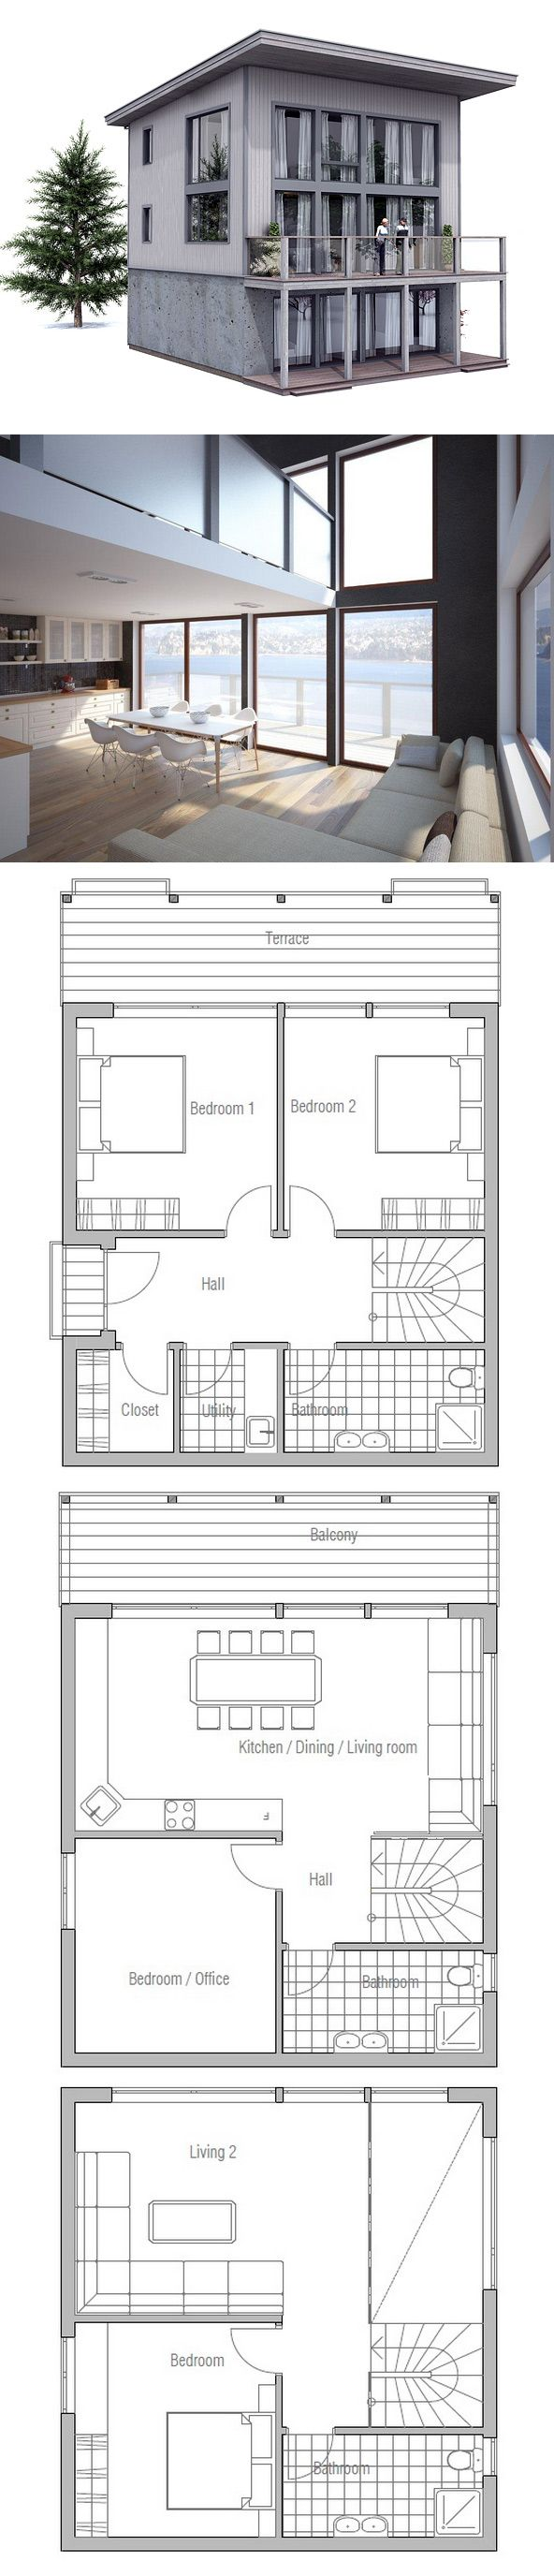 Small House Plan - only 2 floors, switch hall block with bedroom block,  second floor as main